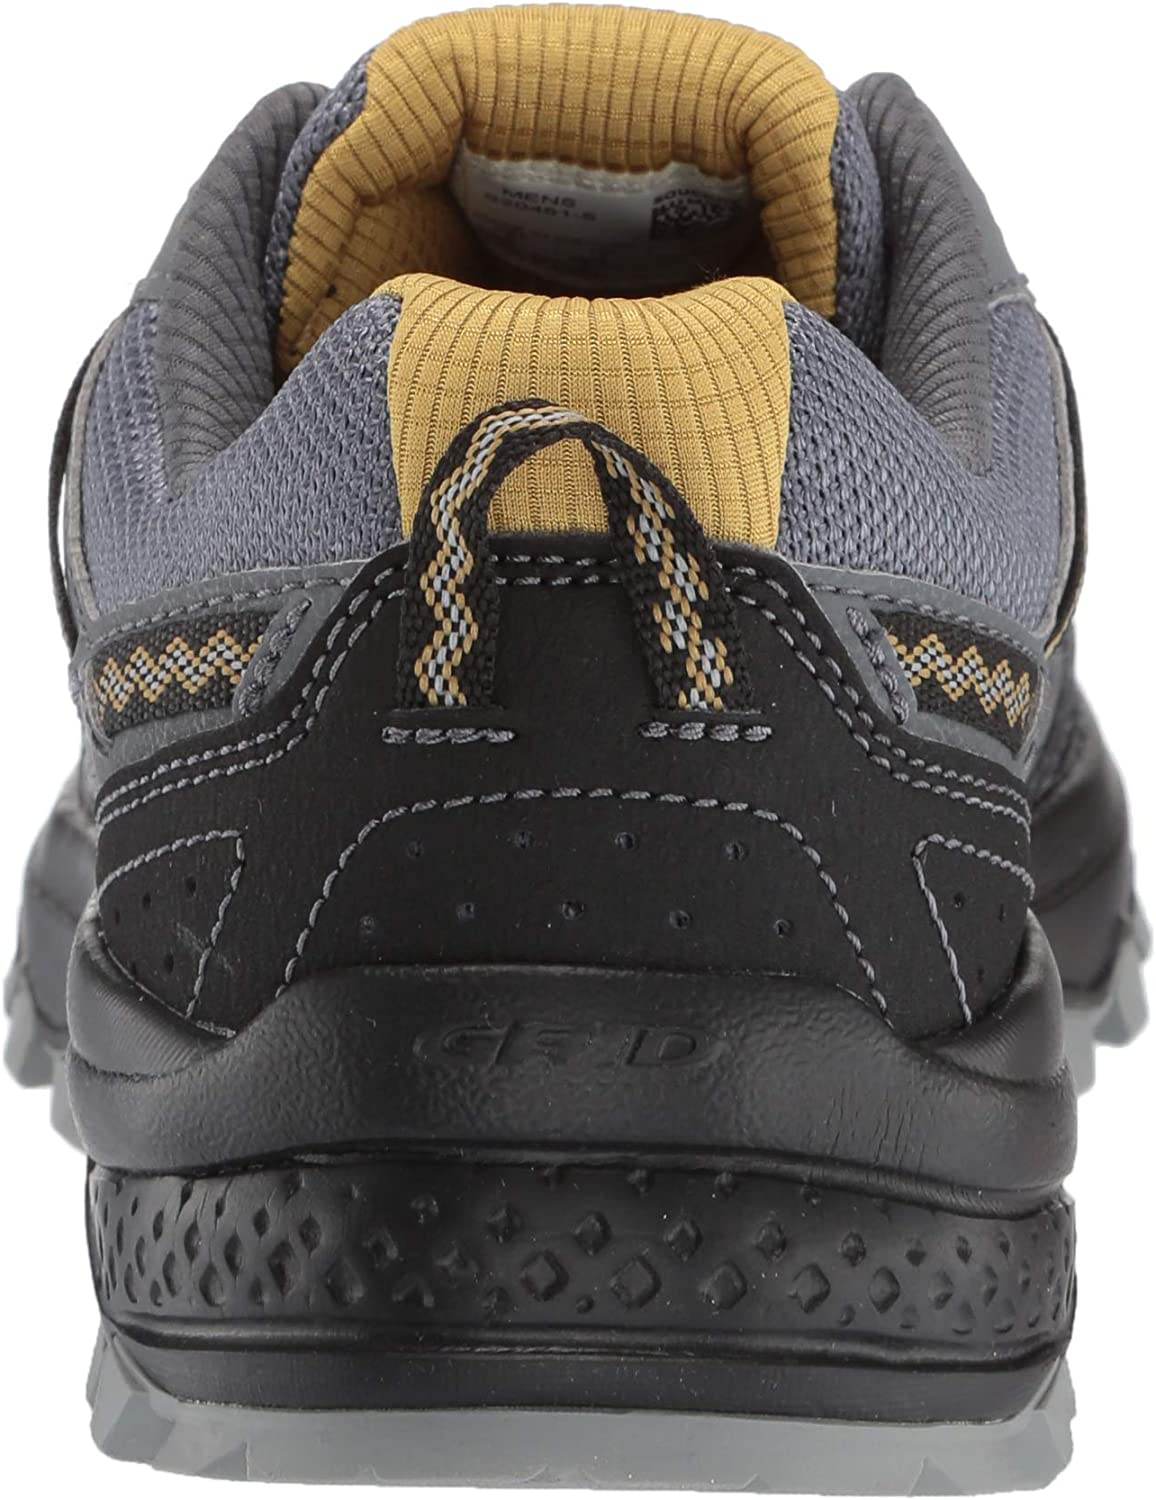 Saucony Mens Excursion Tr12 S20451-3 Running Shoes